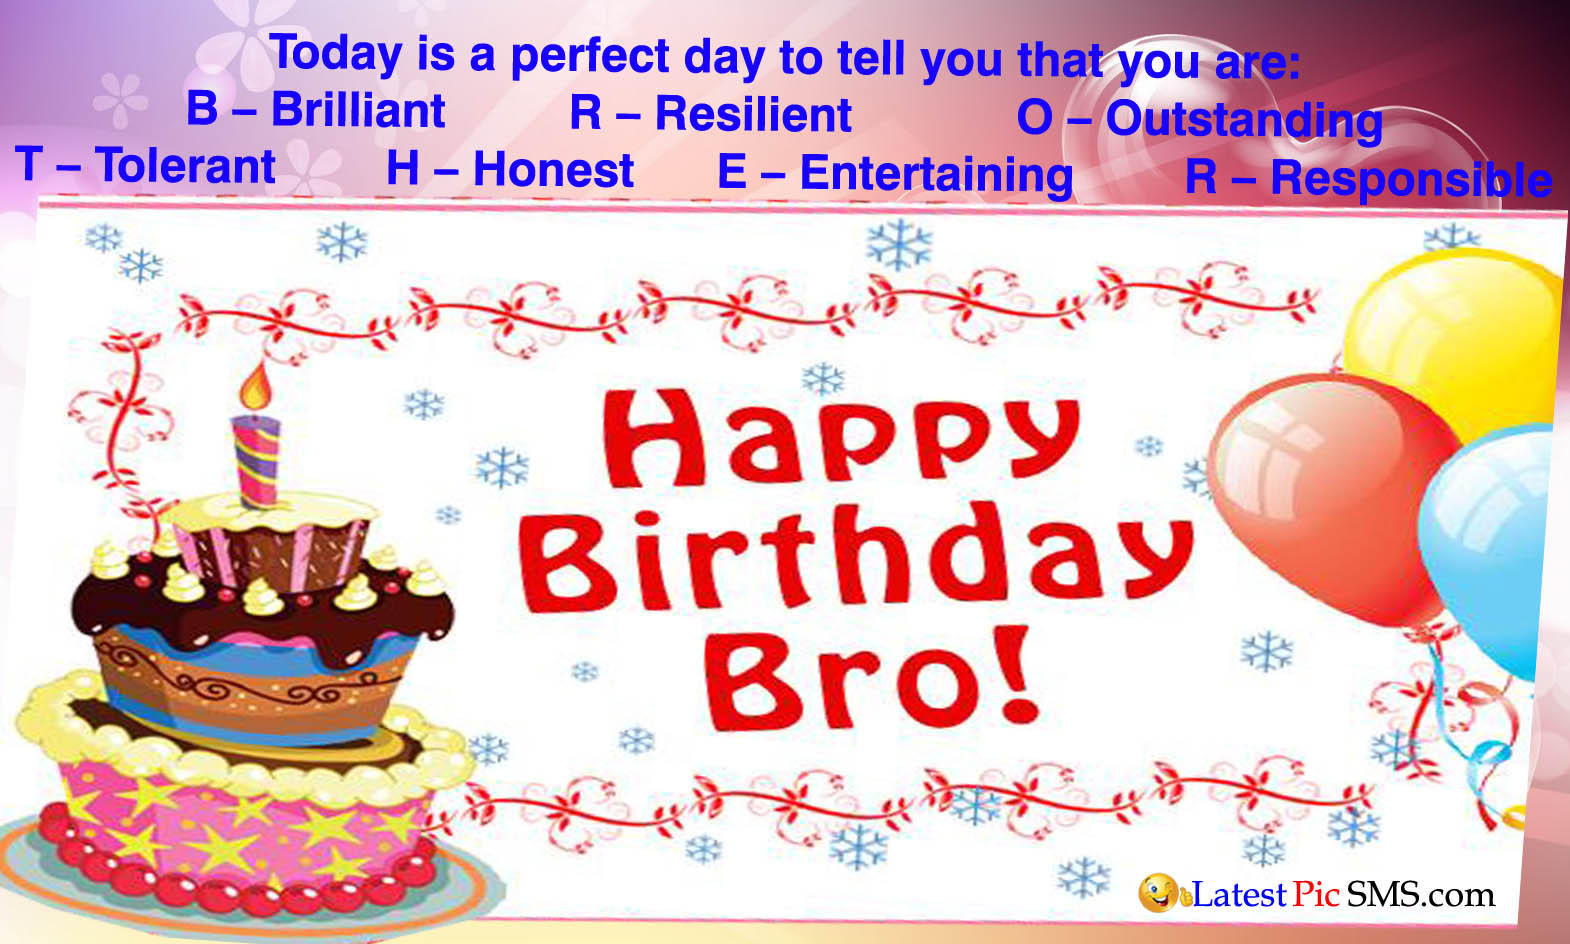 Best Birthday Wishes Quotes Latest Picture Sms